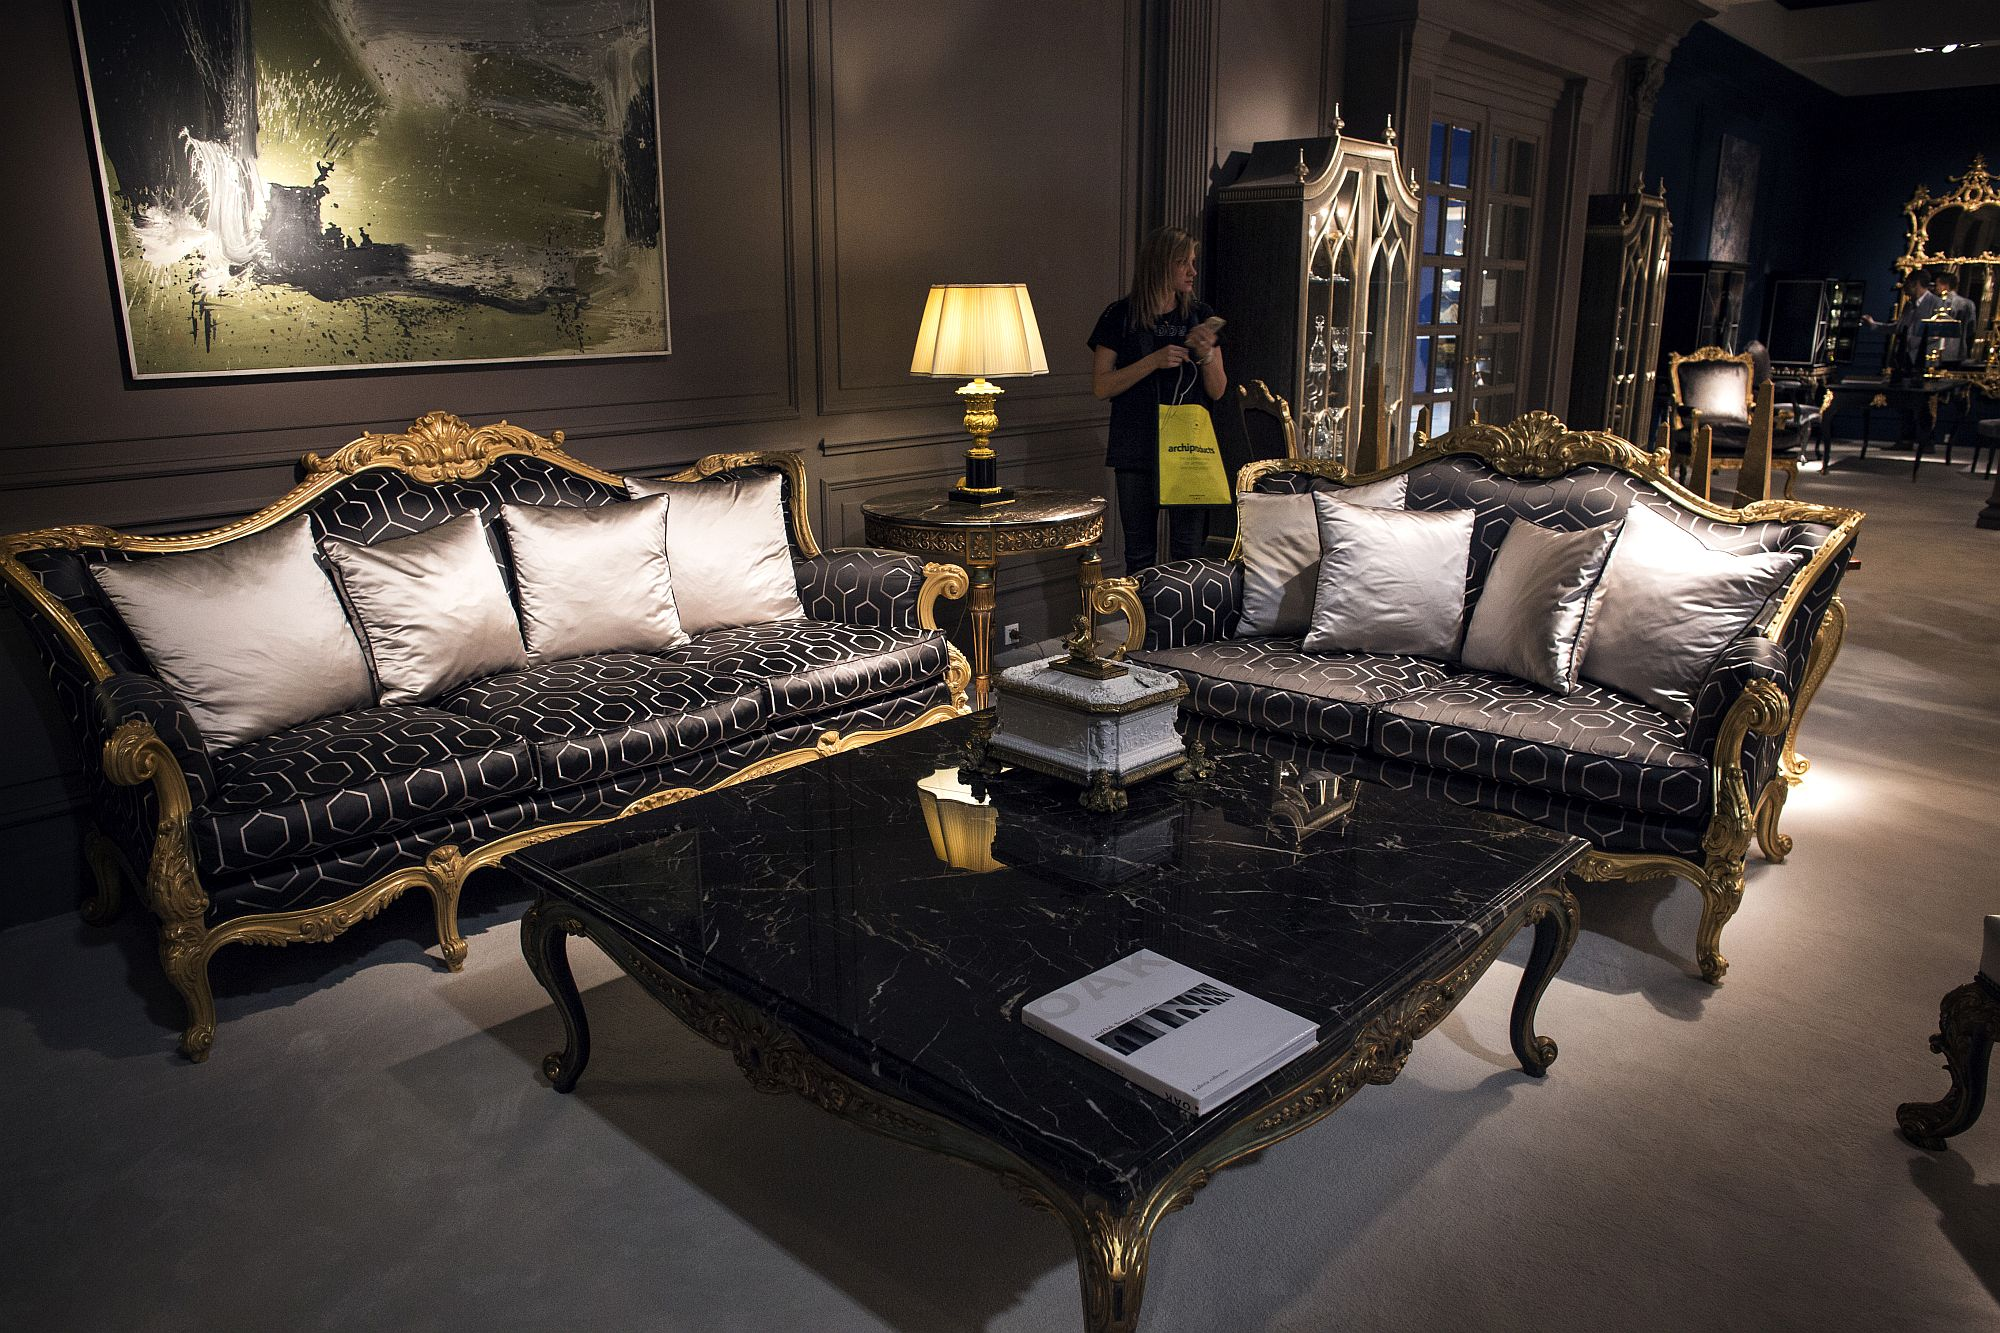 Custom coffee table in black marble and a base clad in gold!